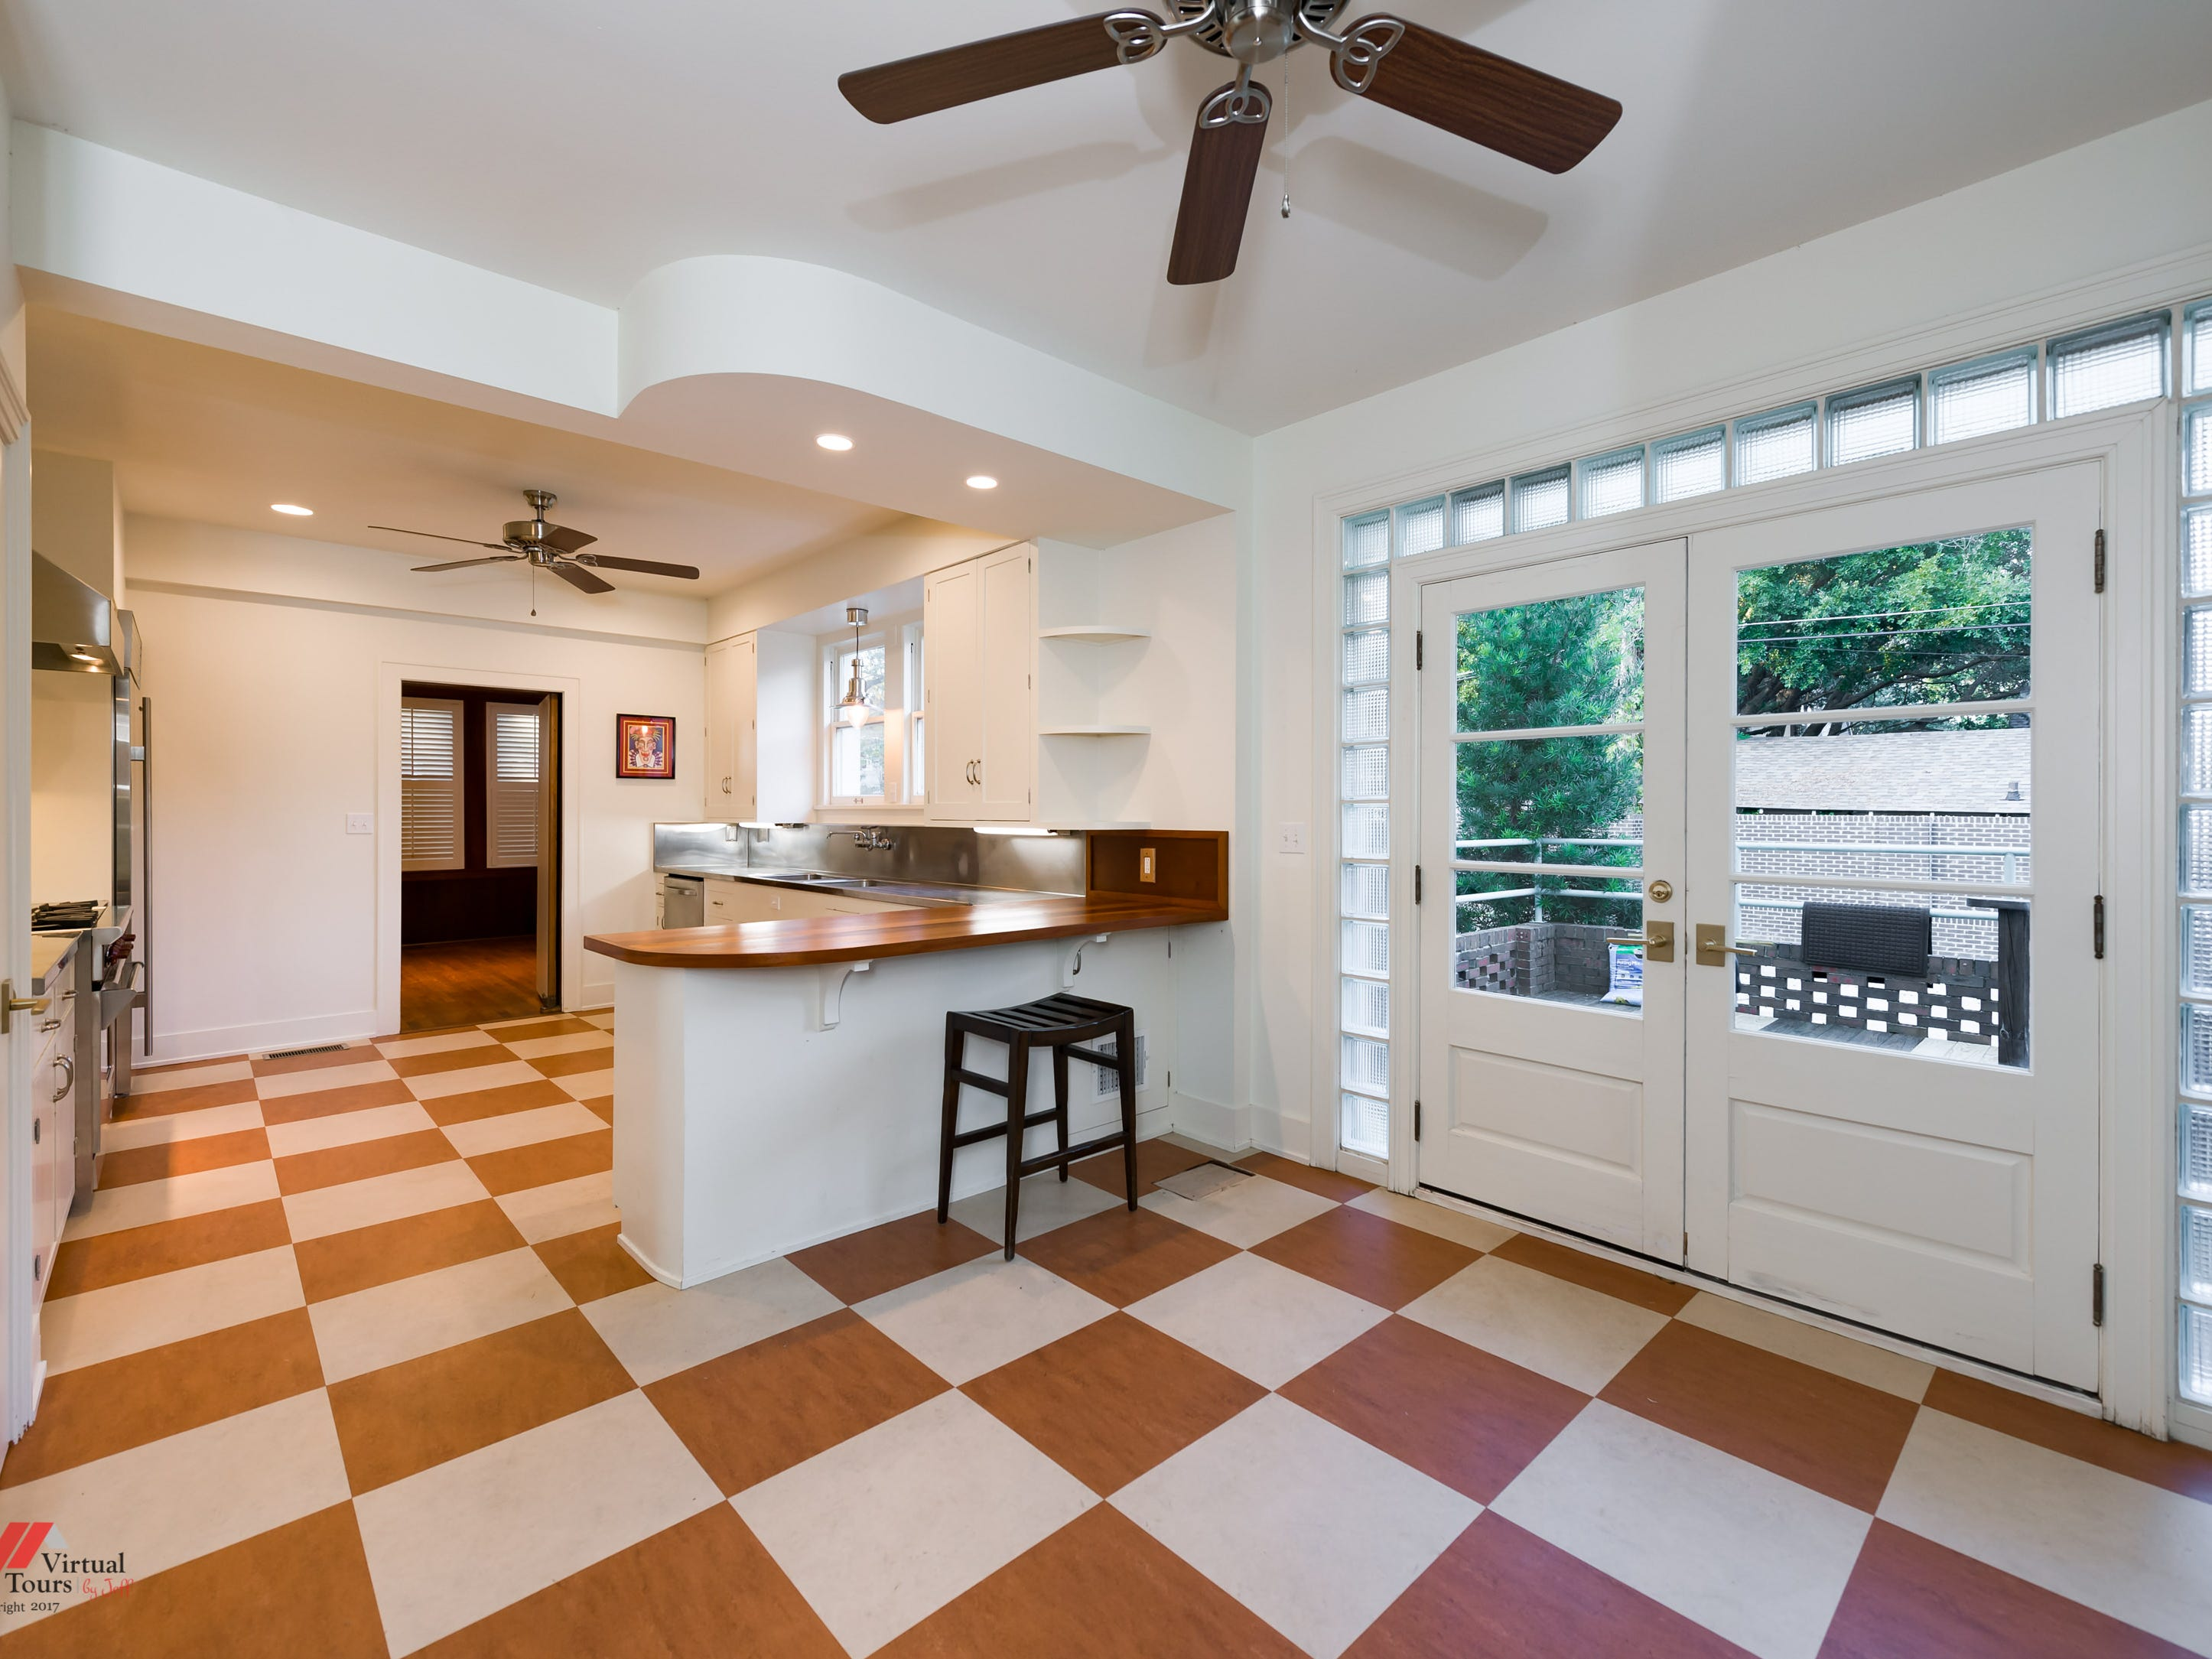 660 Slattery Boulevard, Shreveport Price: $495,000 Details: 4 bedrooms, 4 bathrooms, 3,827 square feet Special features: Historic 1930s Hollywood style home of architectural significance in South Highlands, African mahogany veneer walls and original wood flooring. Contact: Lisa Hargrove, 393-1003